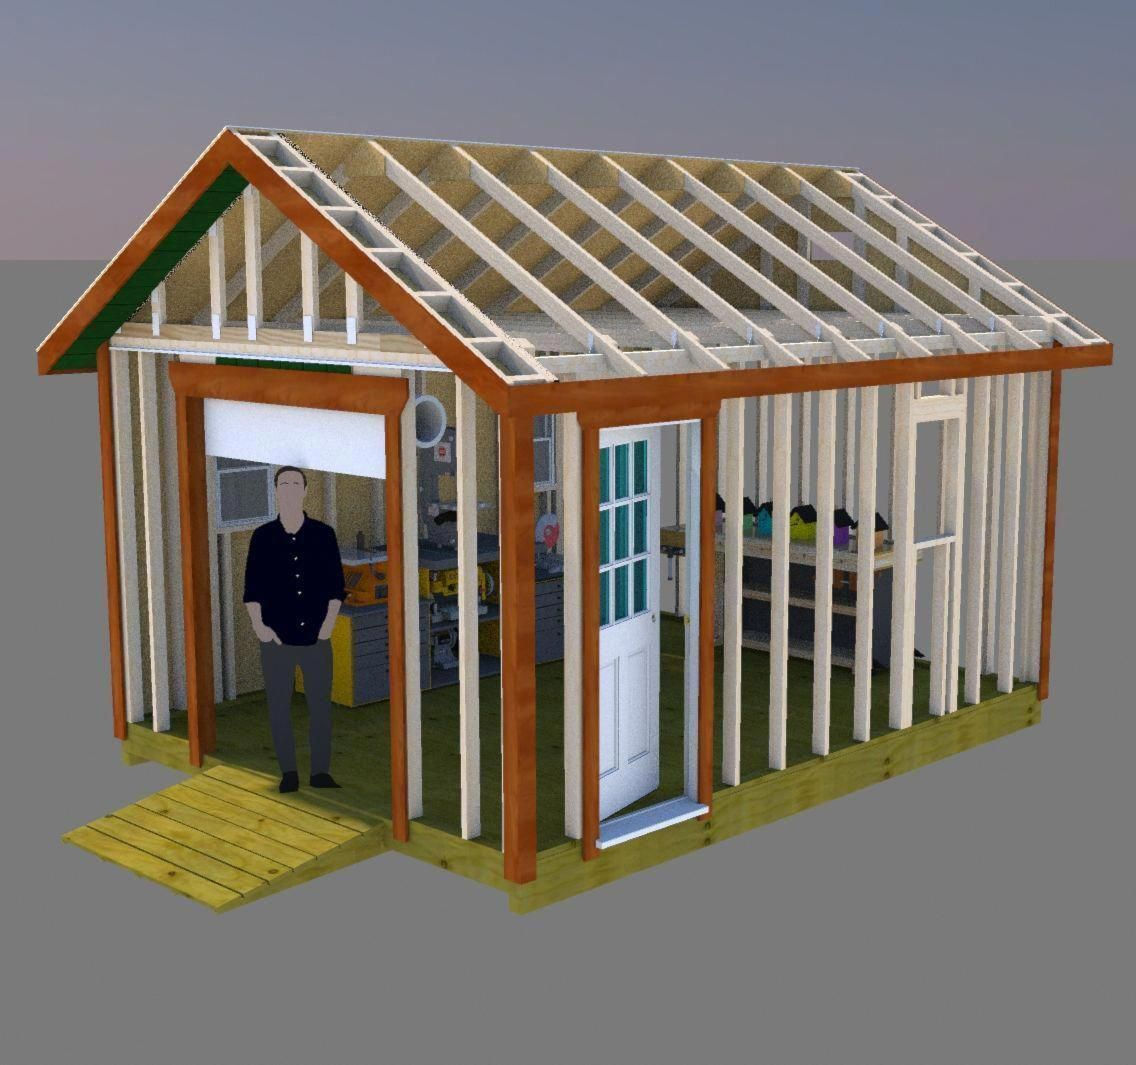 Build Your Perfect Workshop With These 12x16 Gable Shed Plans With Roll Up Shed Door And Pre Hung Side Entry Door U Diy Shed Plans Shed Doors Building A Shed